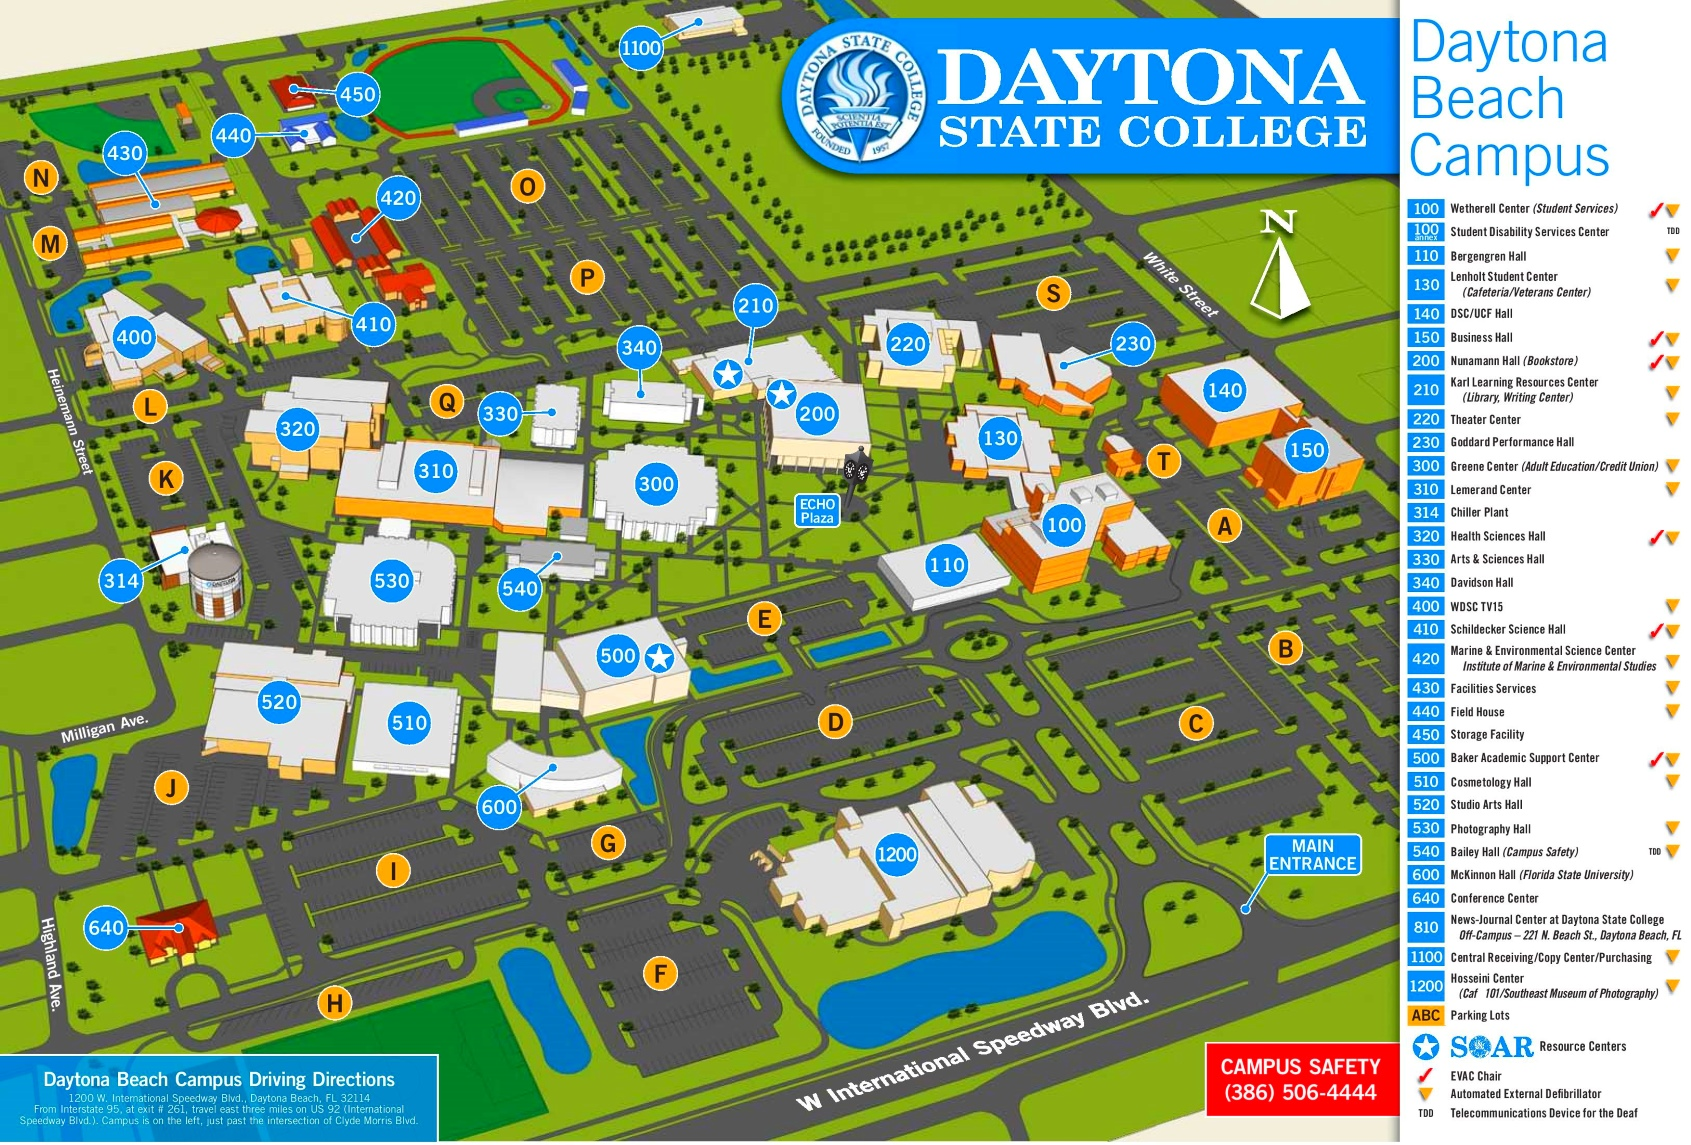 Daytona Beach campus map